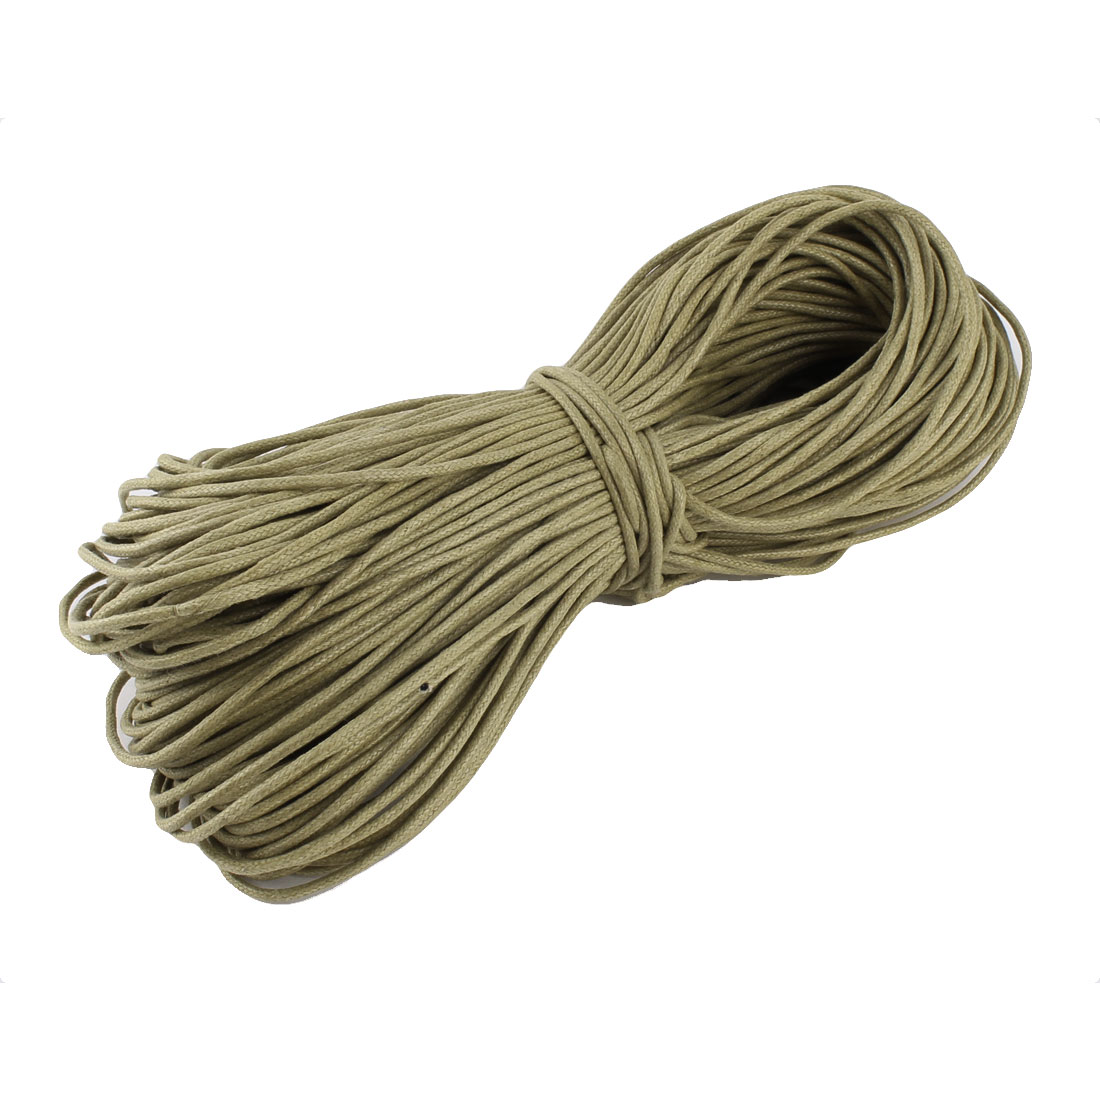 Bracelet Necklace Craft DIY Waxed Cotton String Beading Thread Cord Khaki 2mm 87.5 Yard